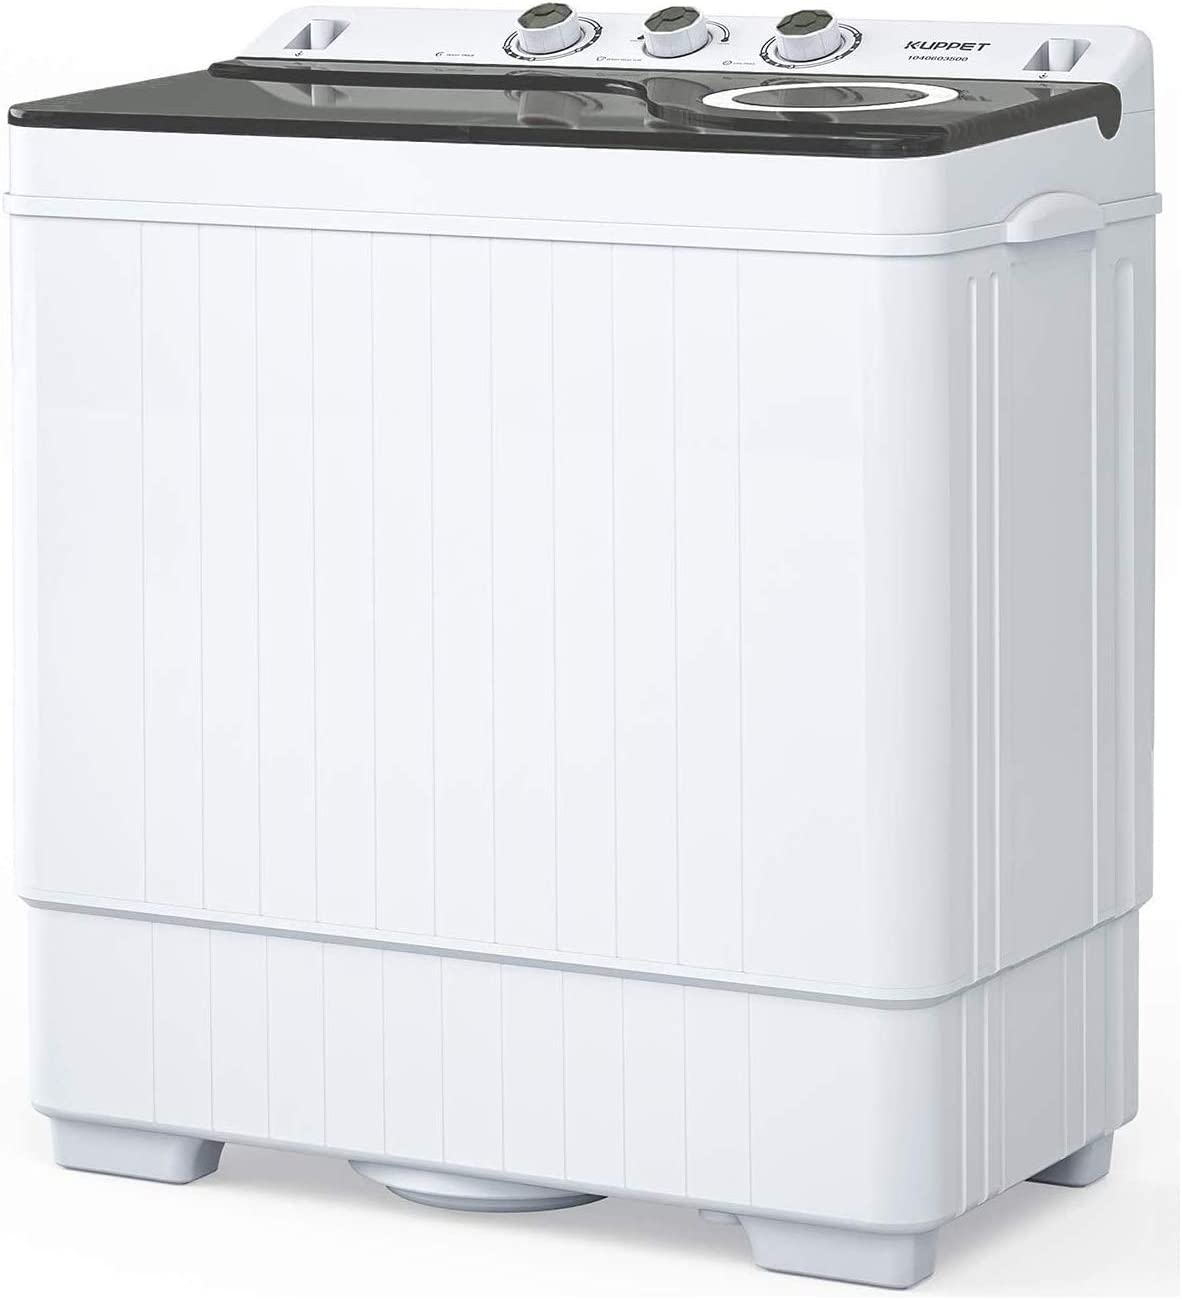 Best For Glass Top And Semi-Automatic: KUPPET Compact Twin Tub Portable Mini Washing machine.